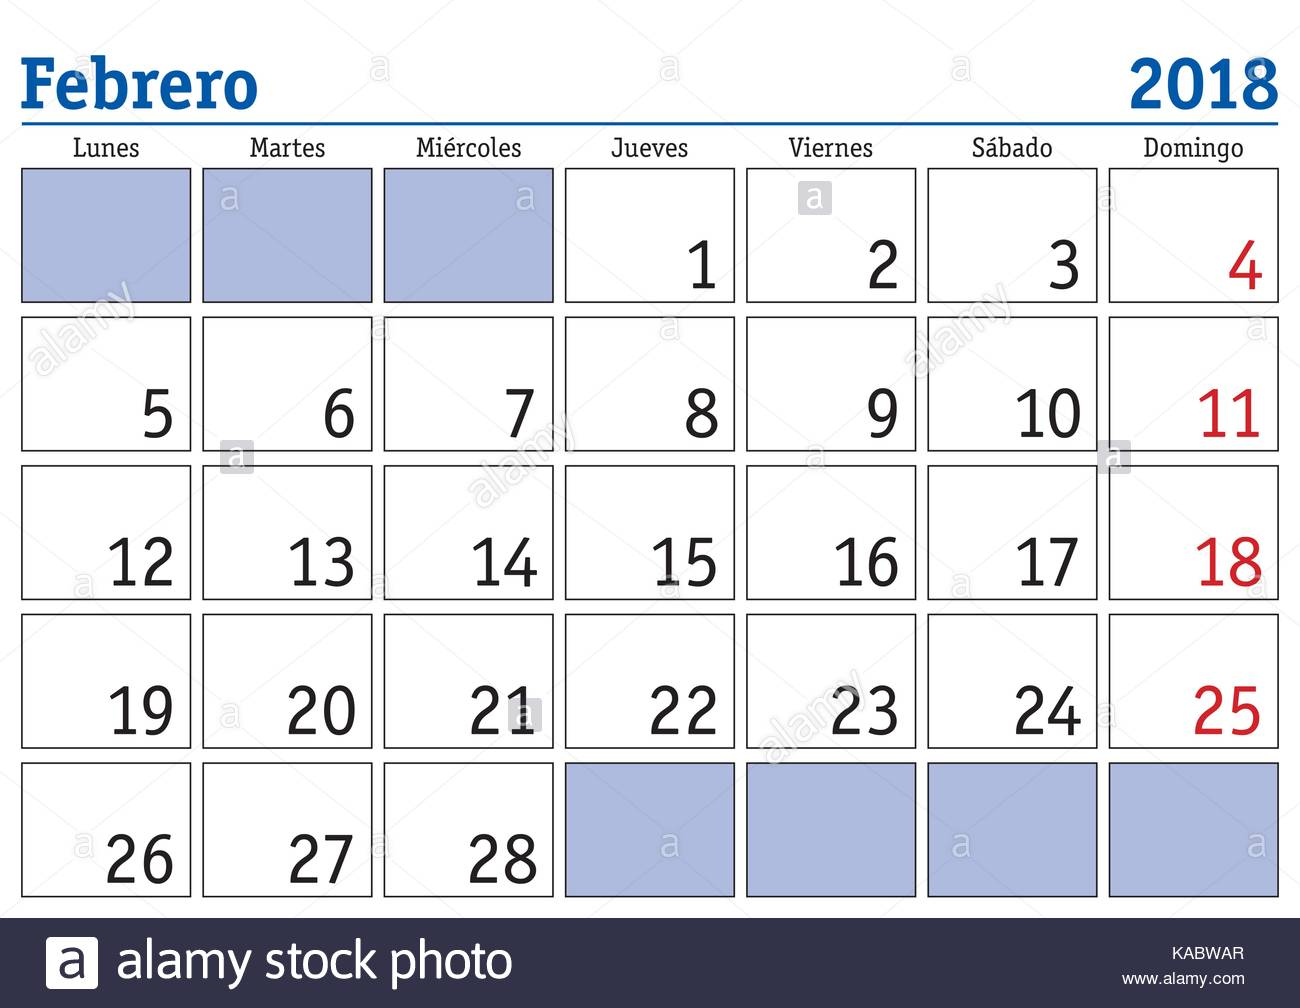 Calendario Del Mes De Febrero February Month In A Year 2018 Wall Calendar In Spanish Febrero